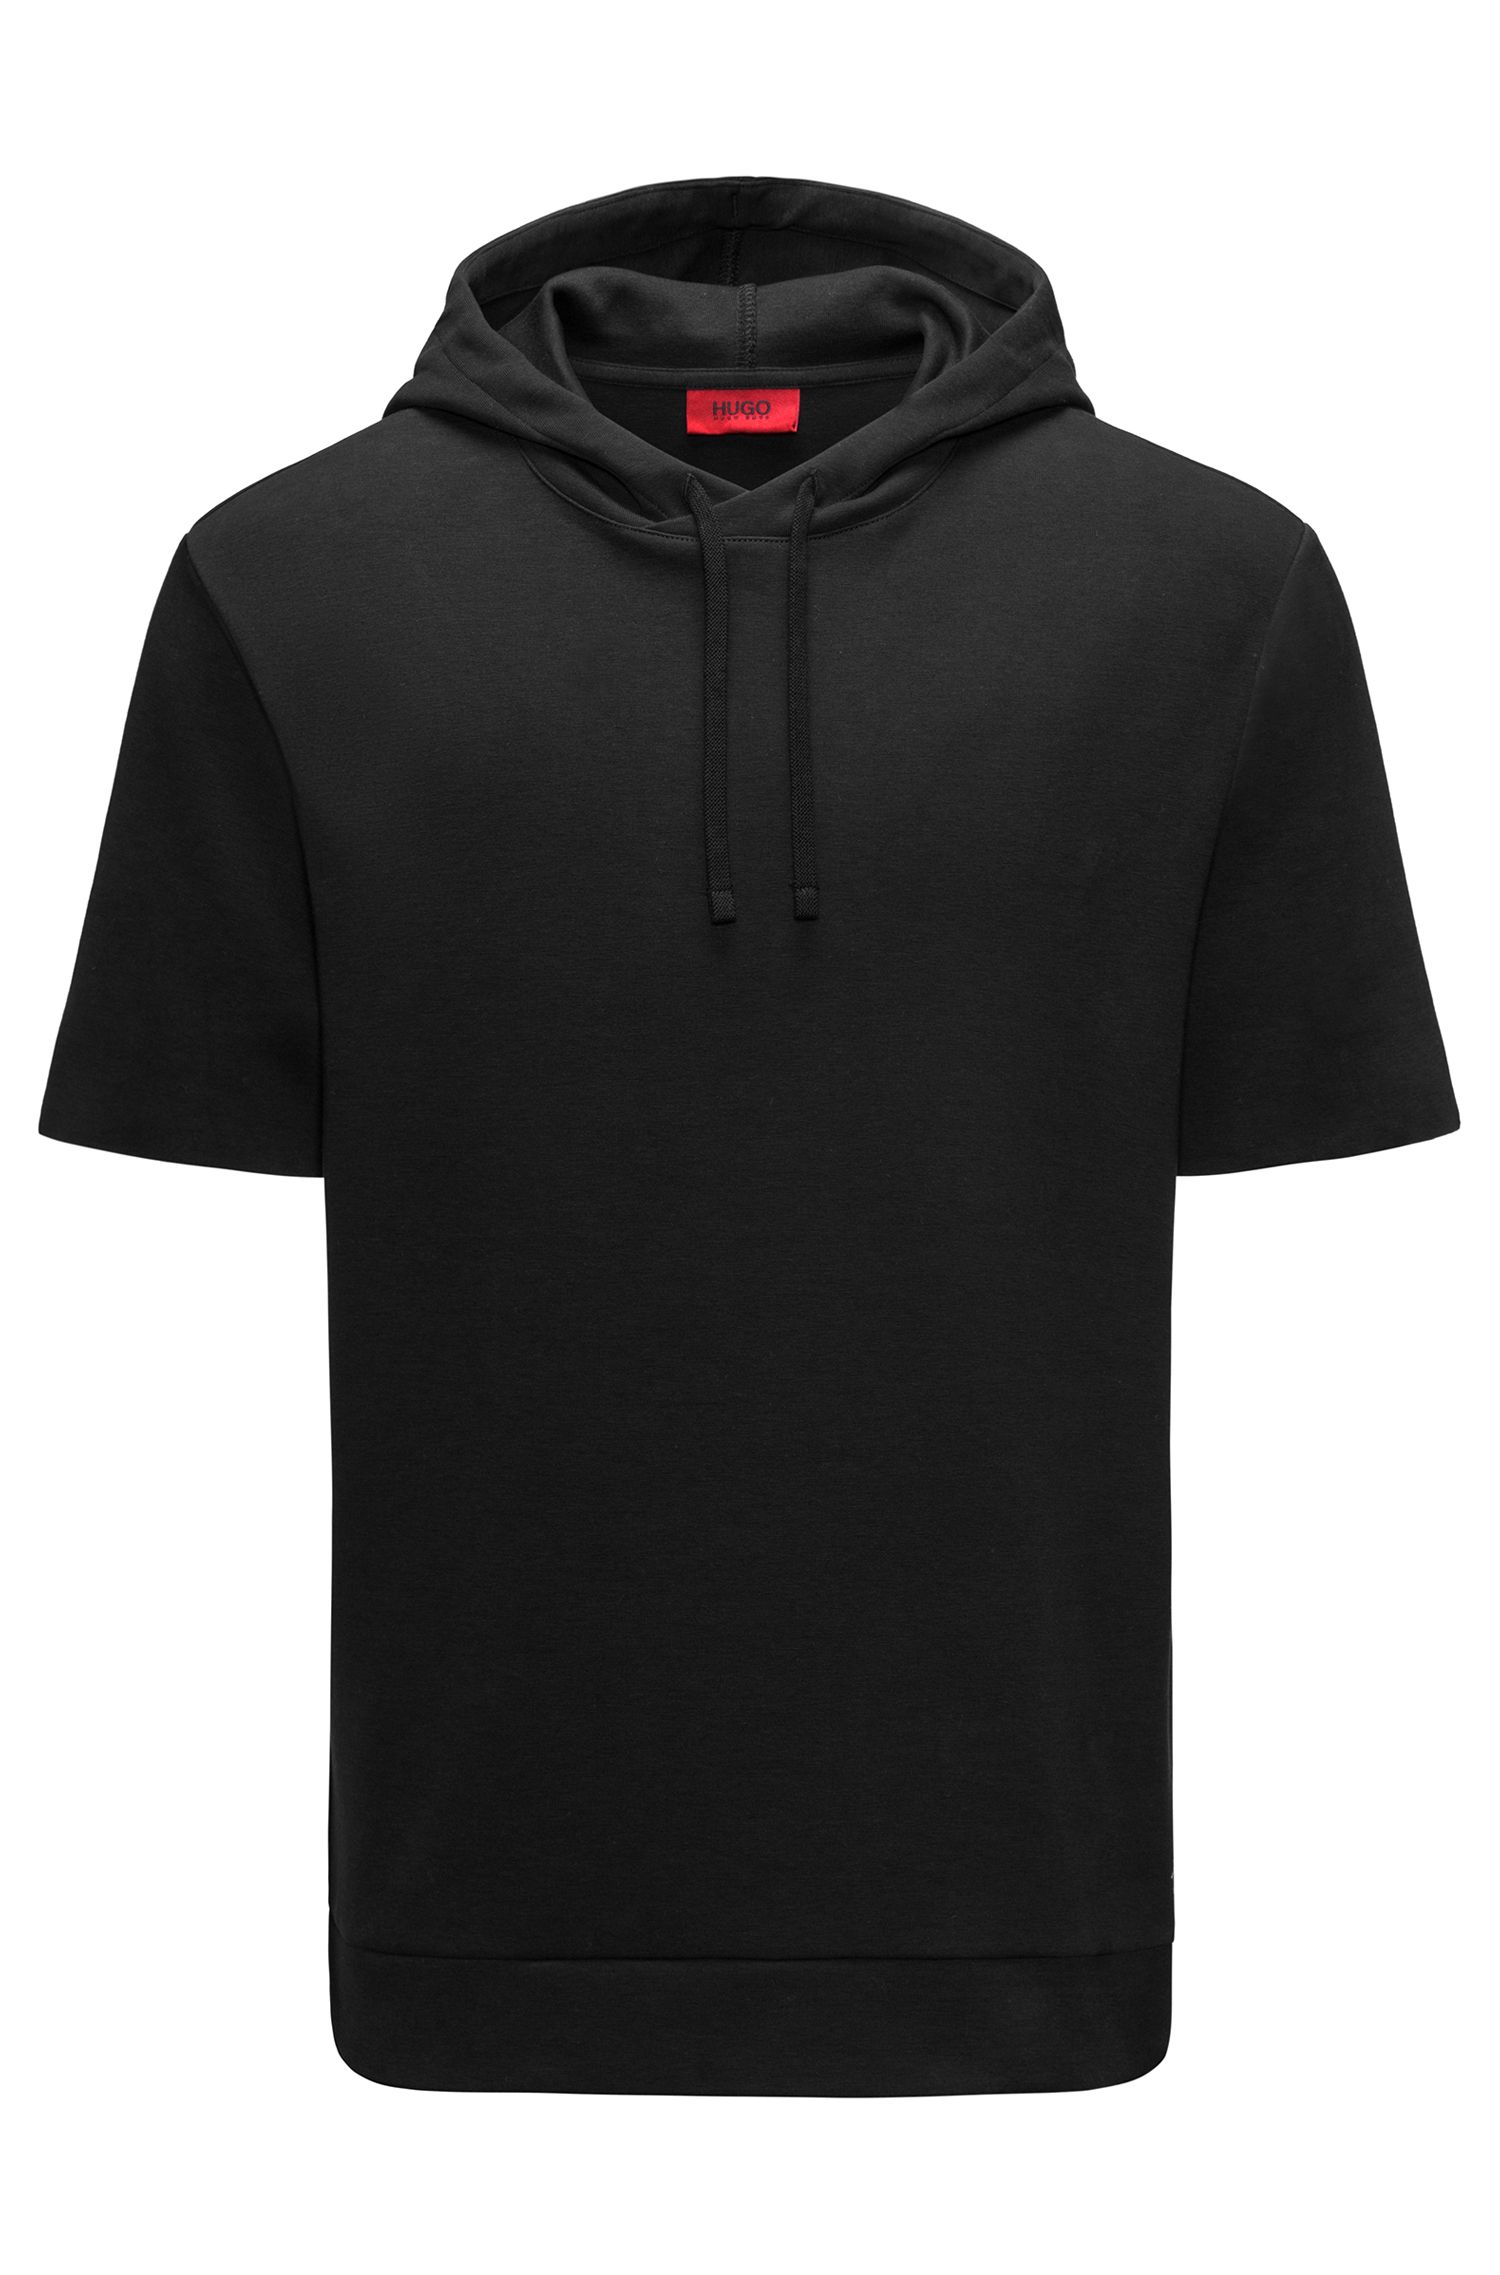 Cotton Blend Short-Sleeve Hoodie | Drib